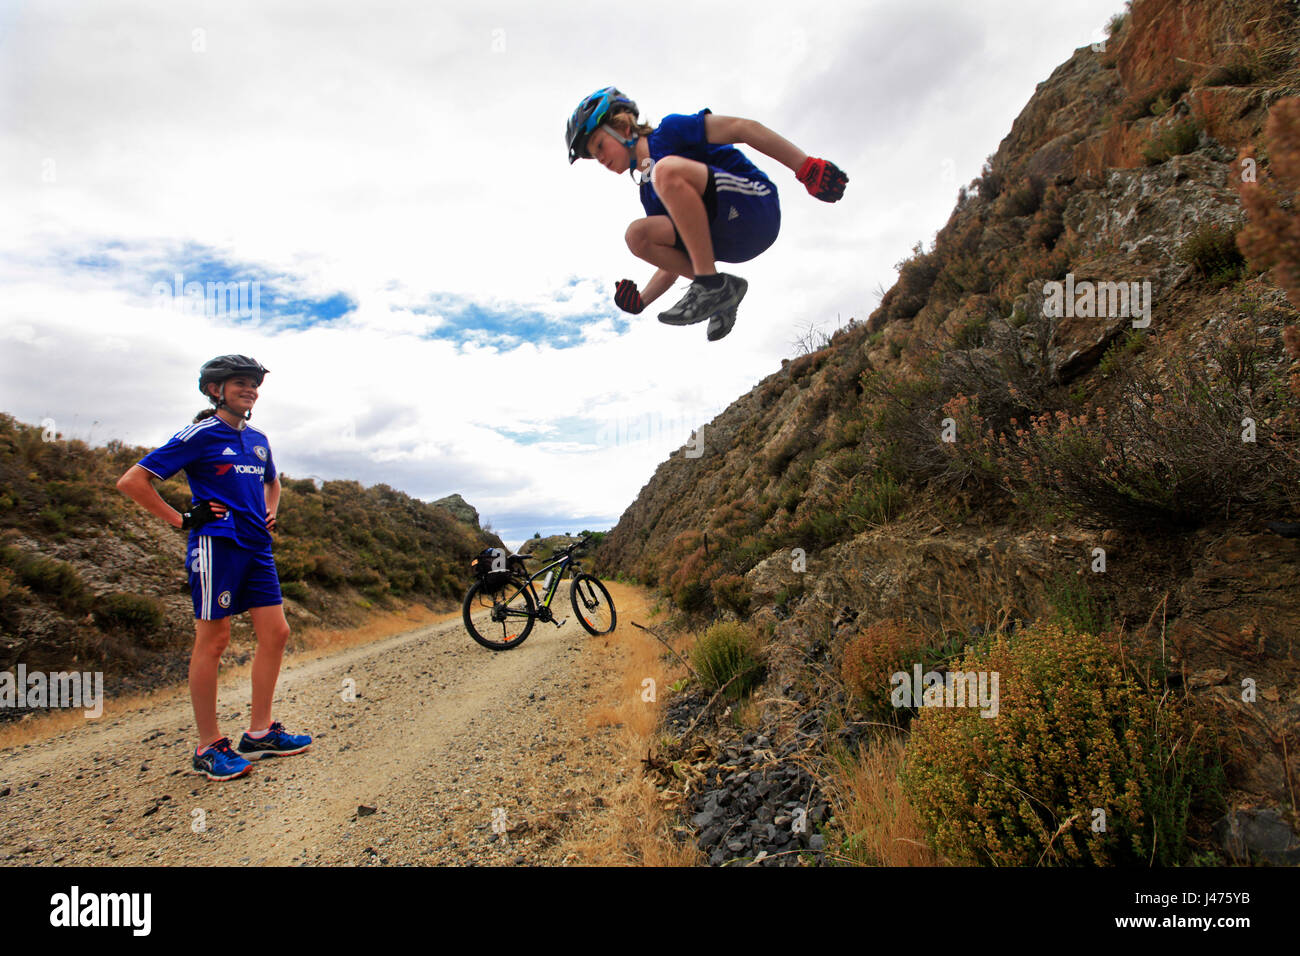 Picture by Tim Cuff - 18-23 December 2016 - Otago Rail Trail, New Zealand: - Stock Image